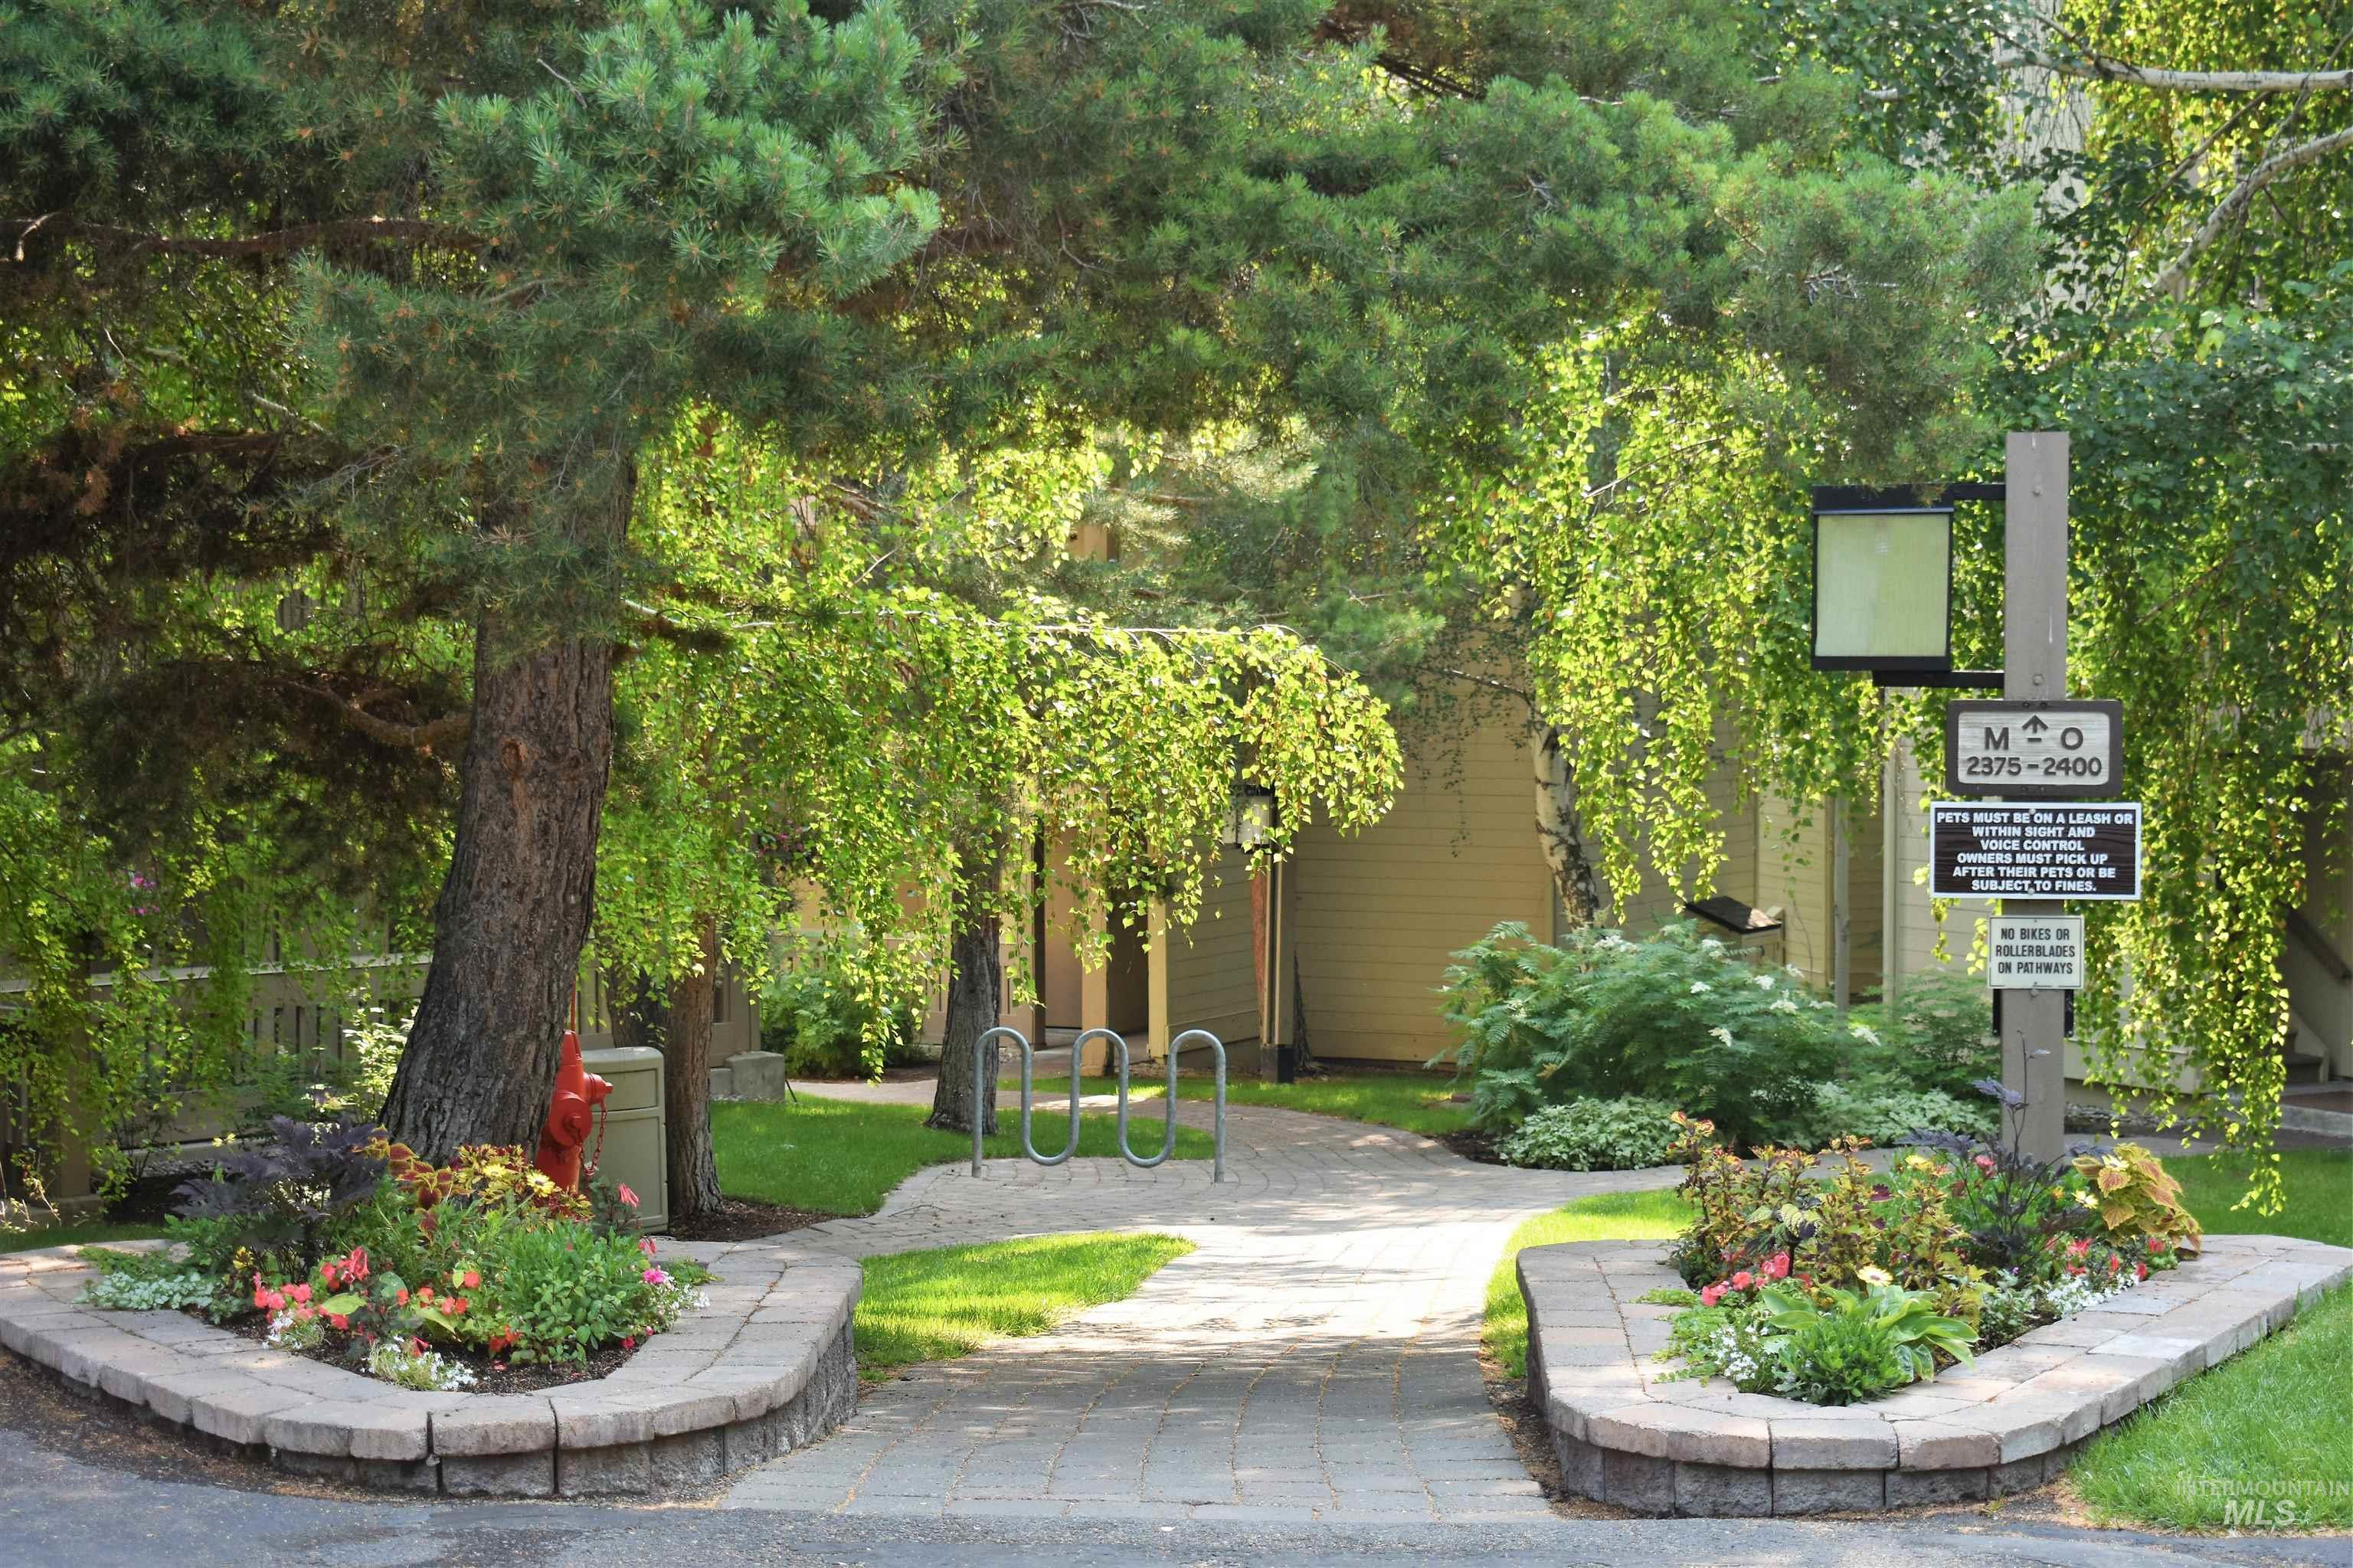 2377 Indian Springs Condo Dr Property Photo